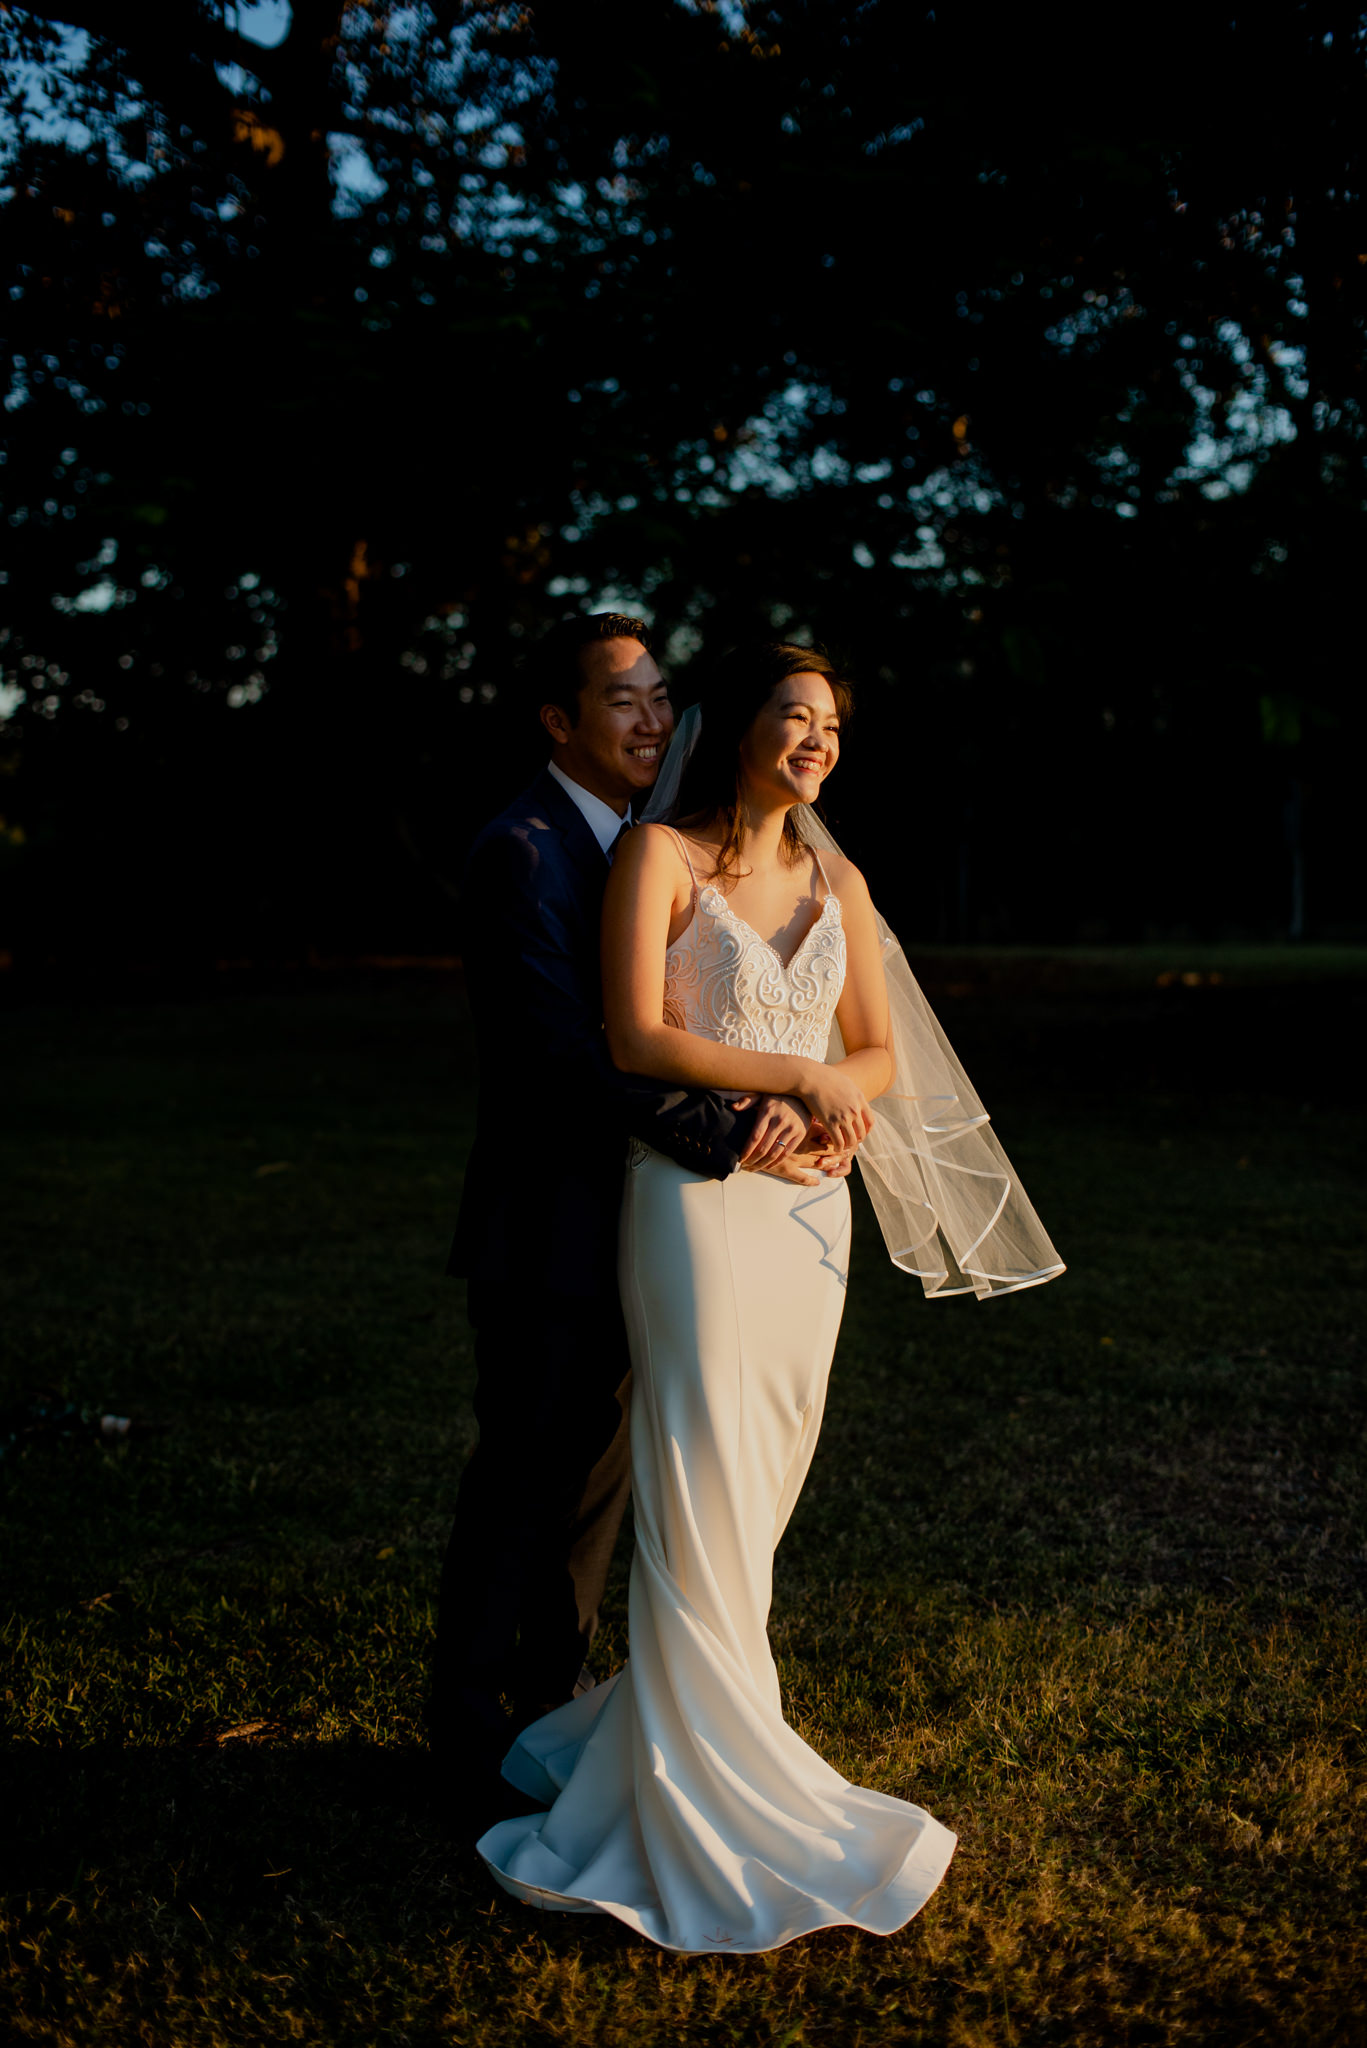 A bride being hugged by her groom as she stands in bright golden afternoon light